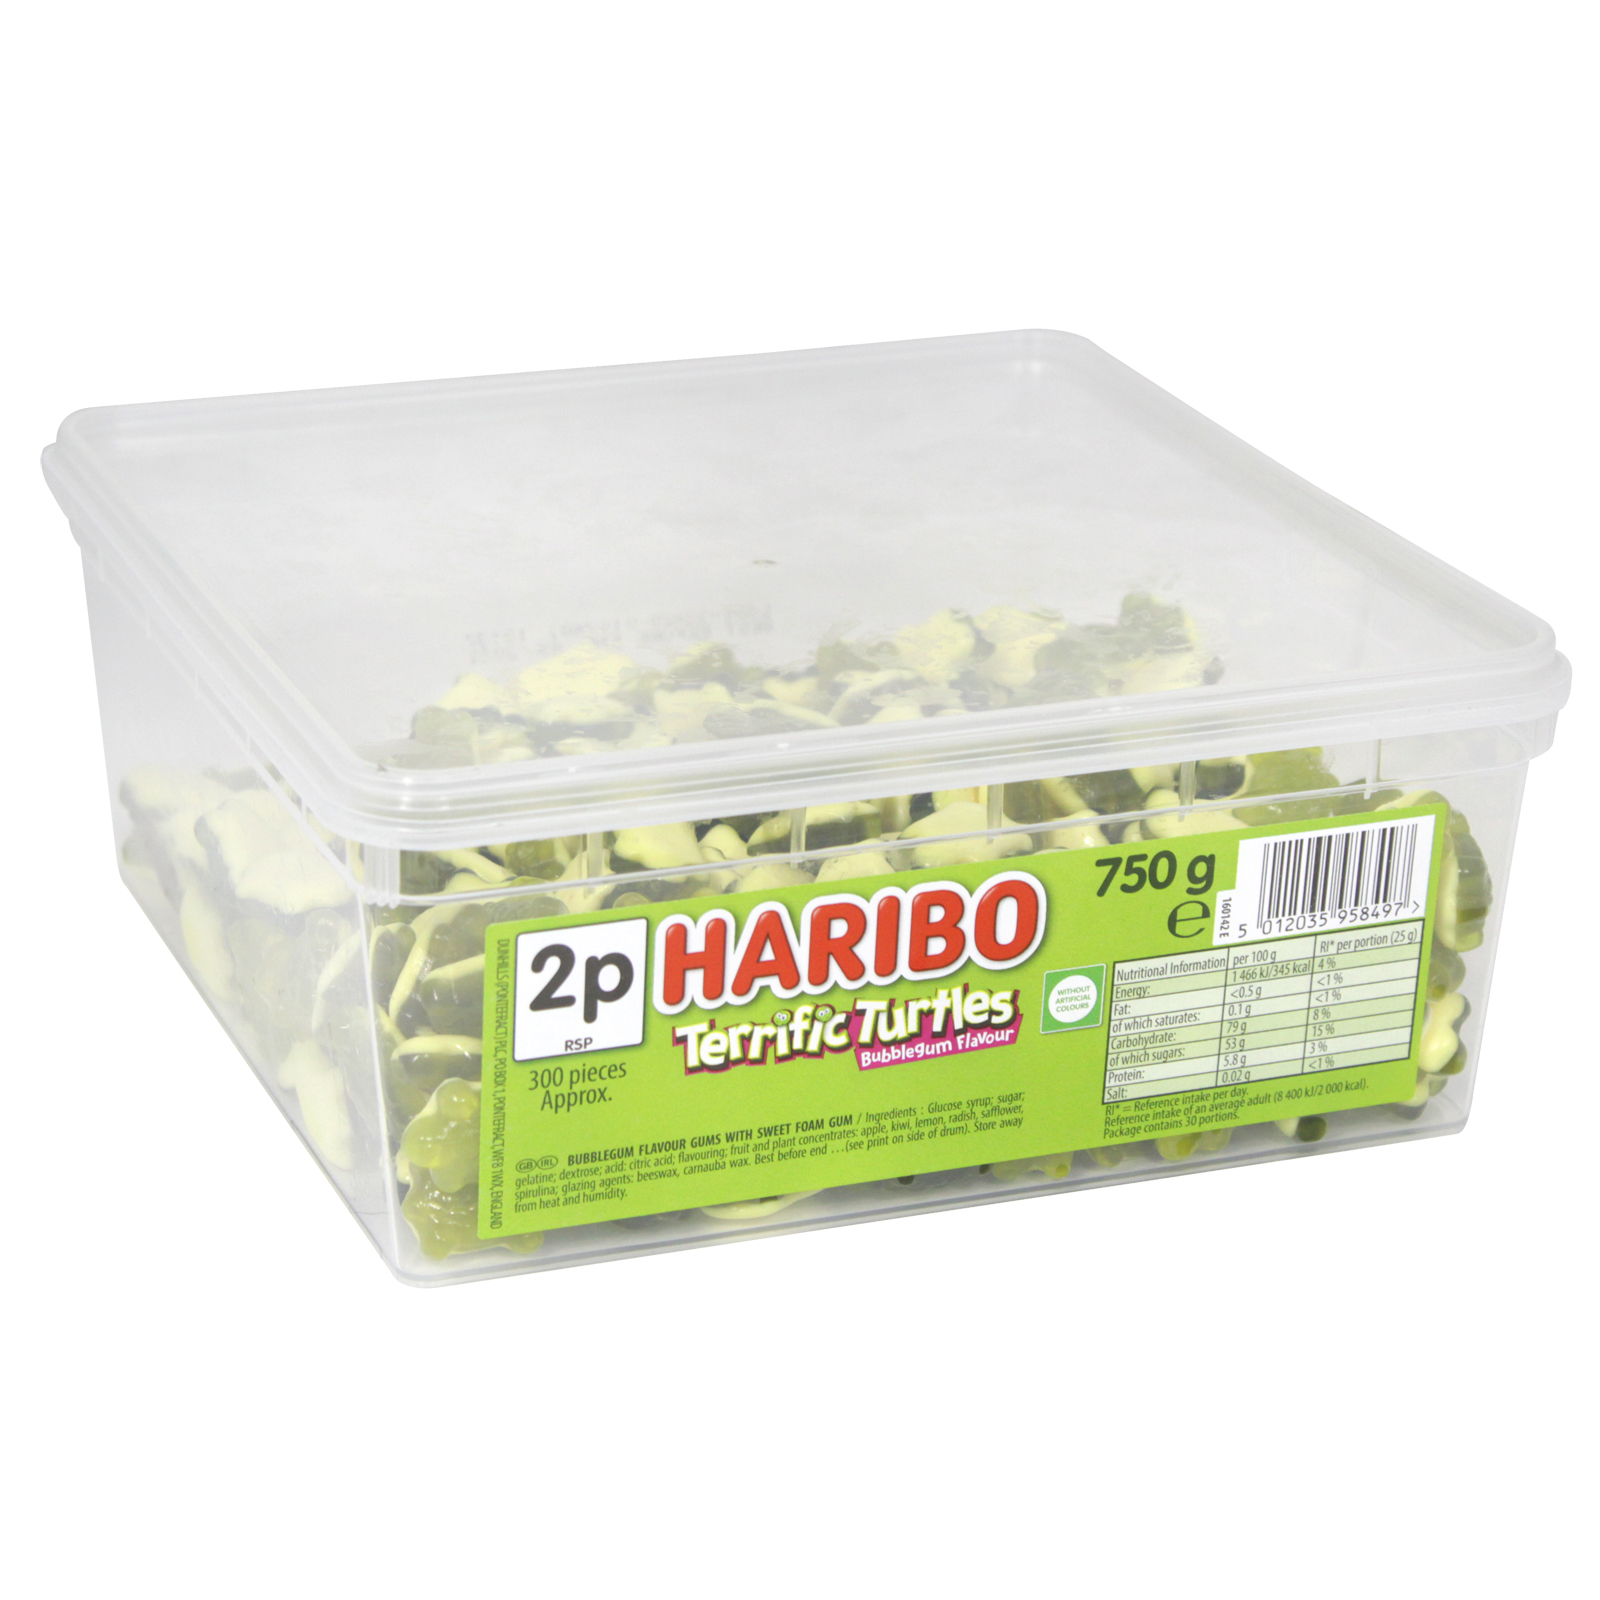 HARIBO TERRIFIC TURTLES DRUM 186GM APPROX 300 PIECES